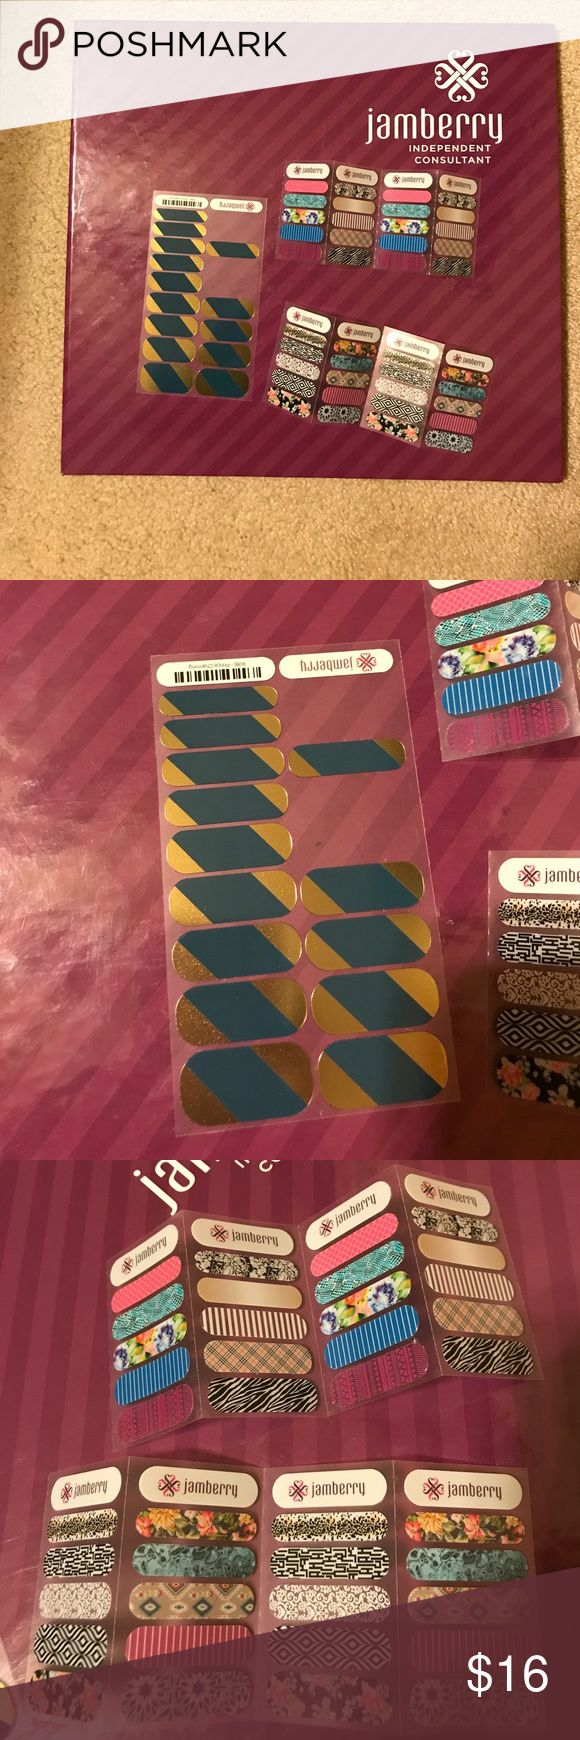 Jamberry custom bundle Jamberry custom bundle - album, Prince Charming, sample sheets Jamberry Accessories